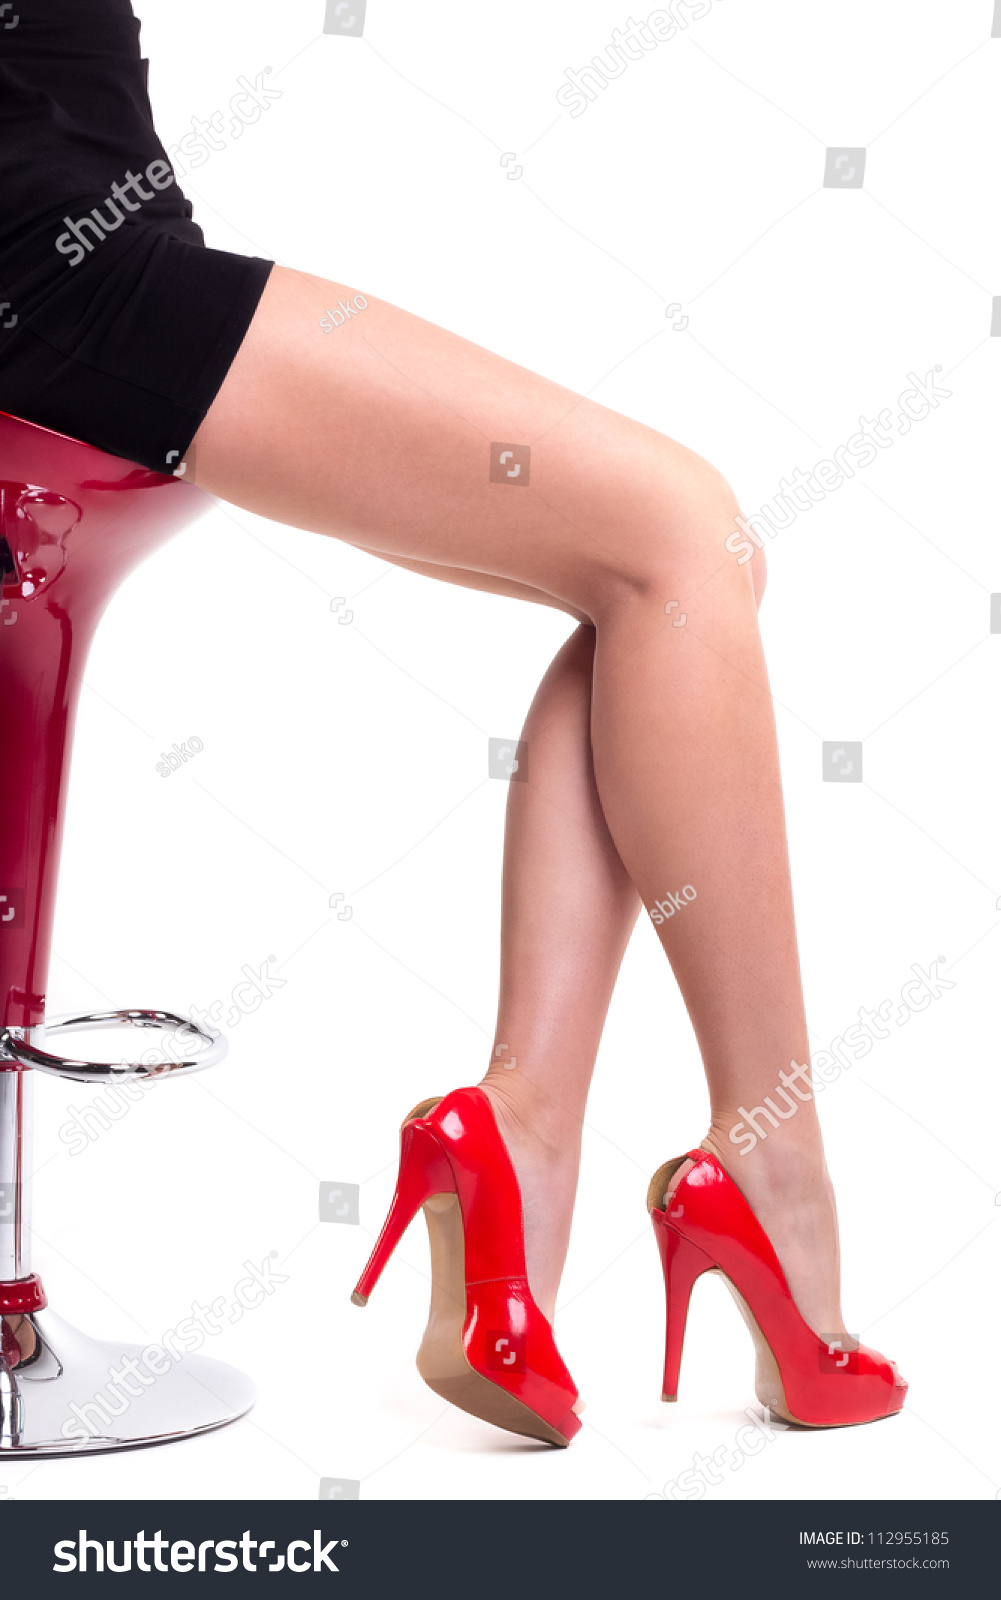 Stock Video Clip of Slow motion sexy legs in high heels